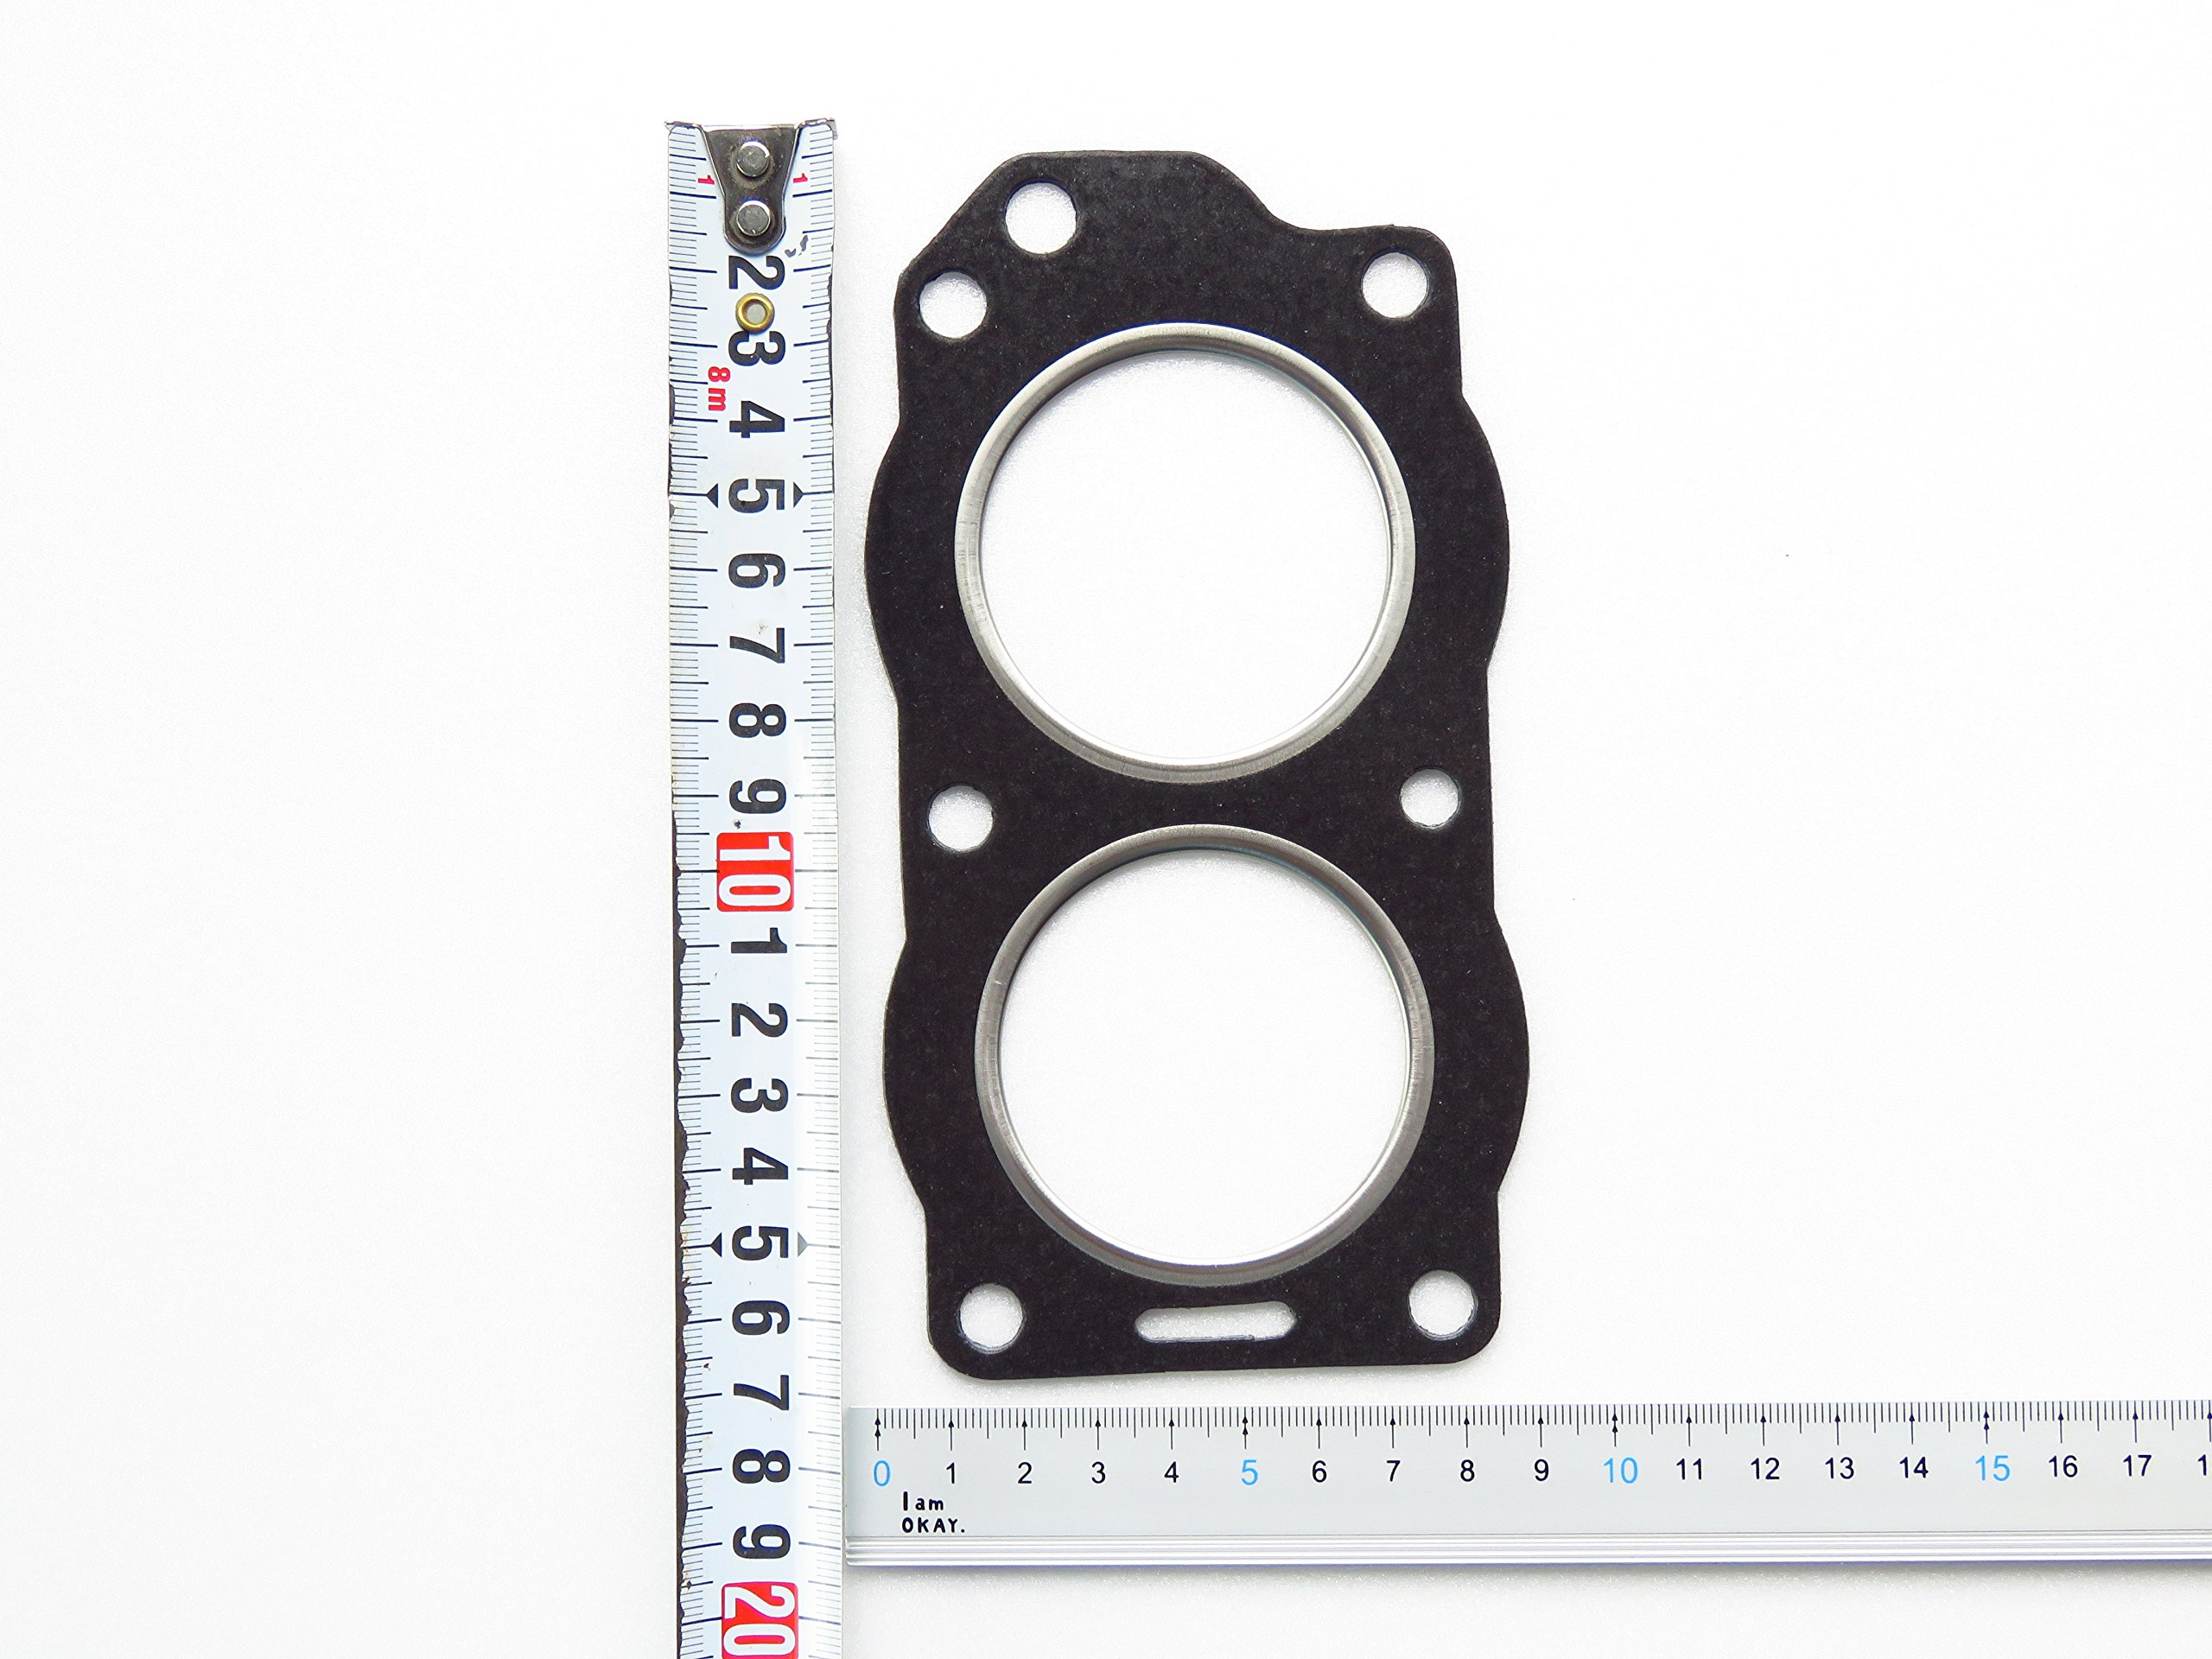 For OMC Johnson Evinrude Outboard, fit on 9.9, 15 HP Gasket 330818, 777389, 34140, 18-2963, New